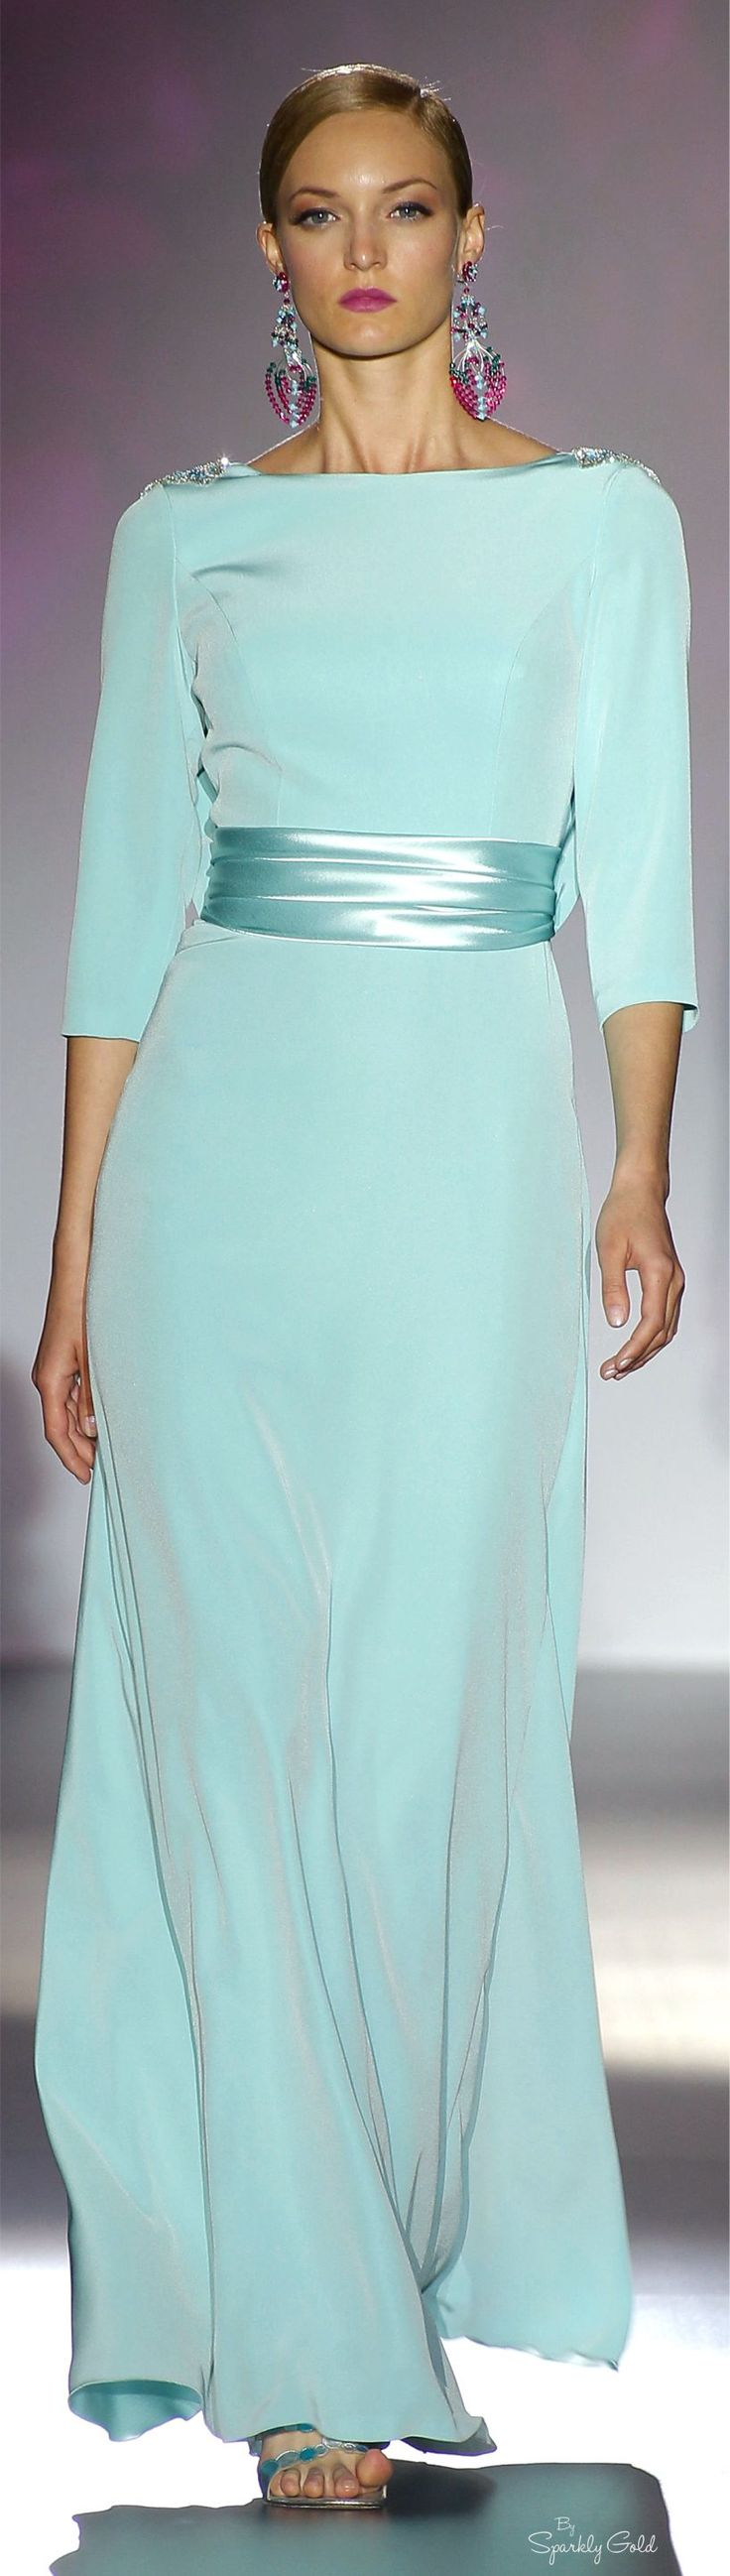 Pasarela turquoise gowns and tiffany blue